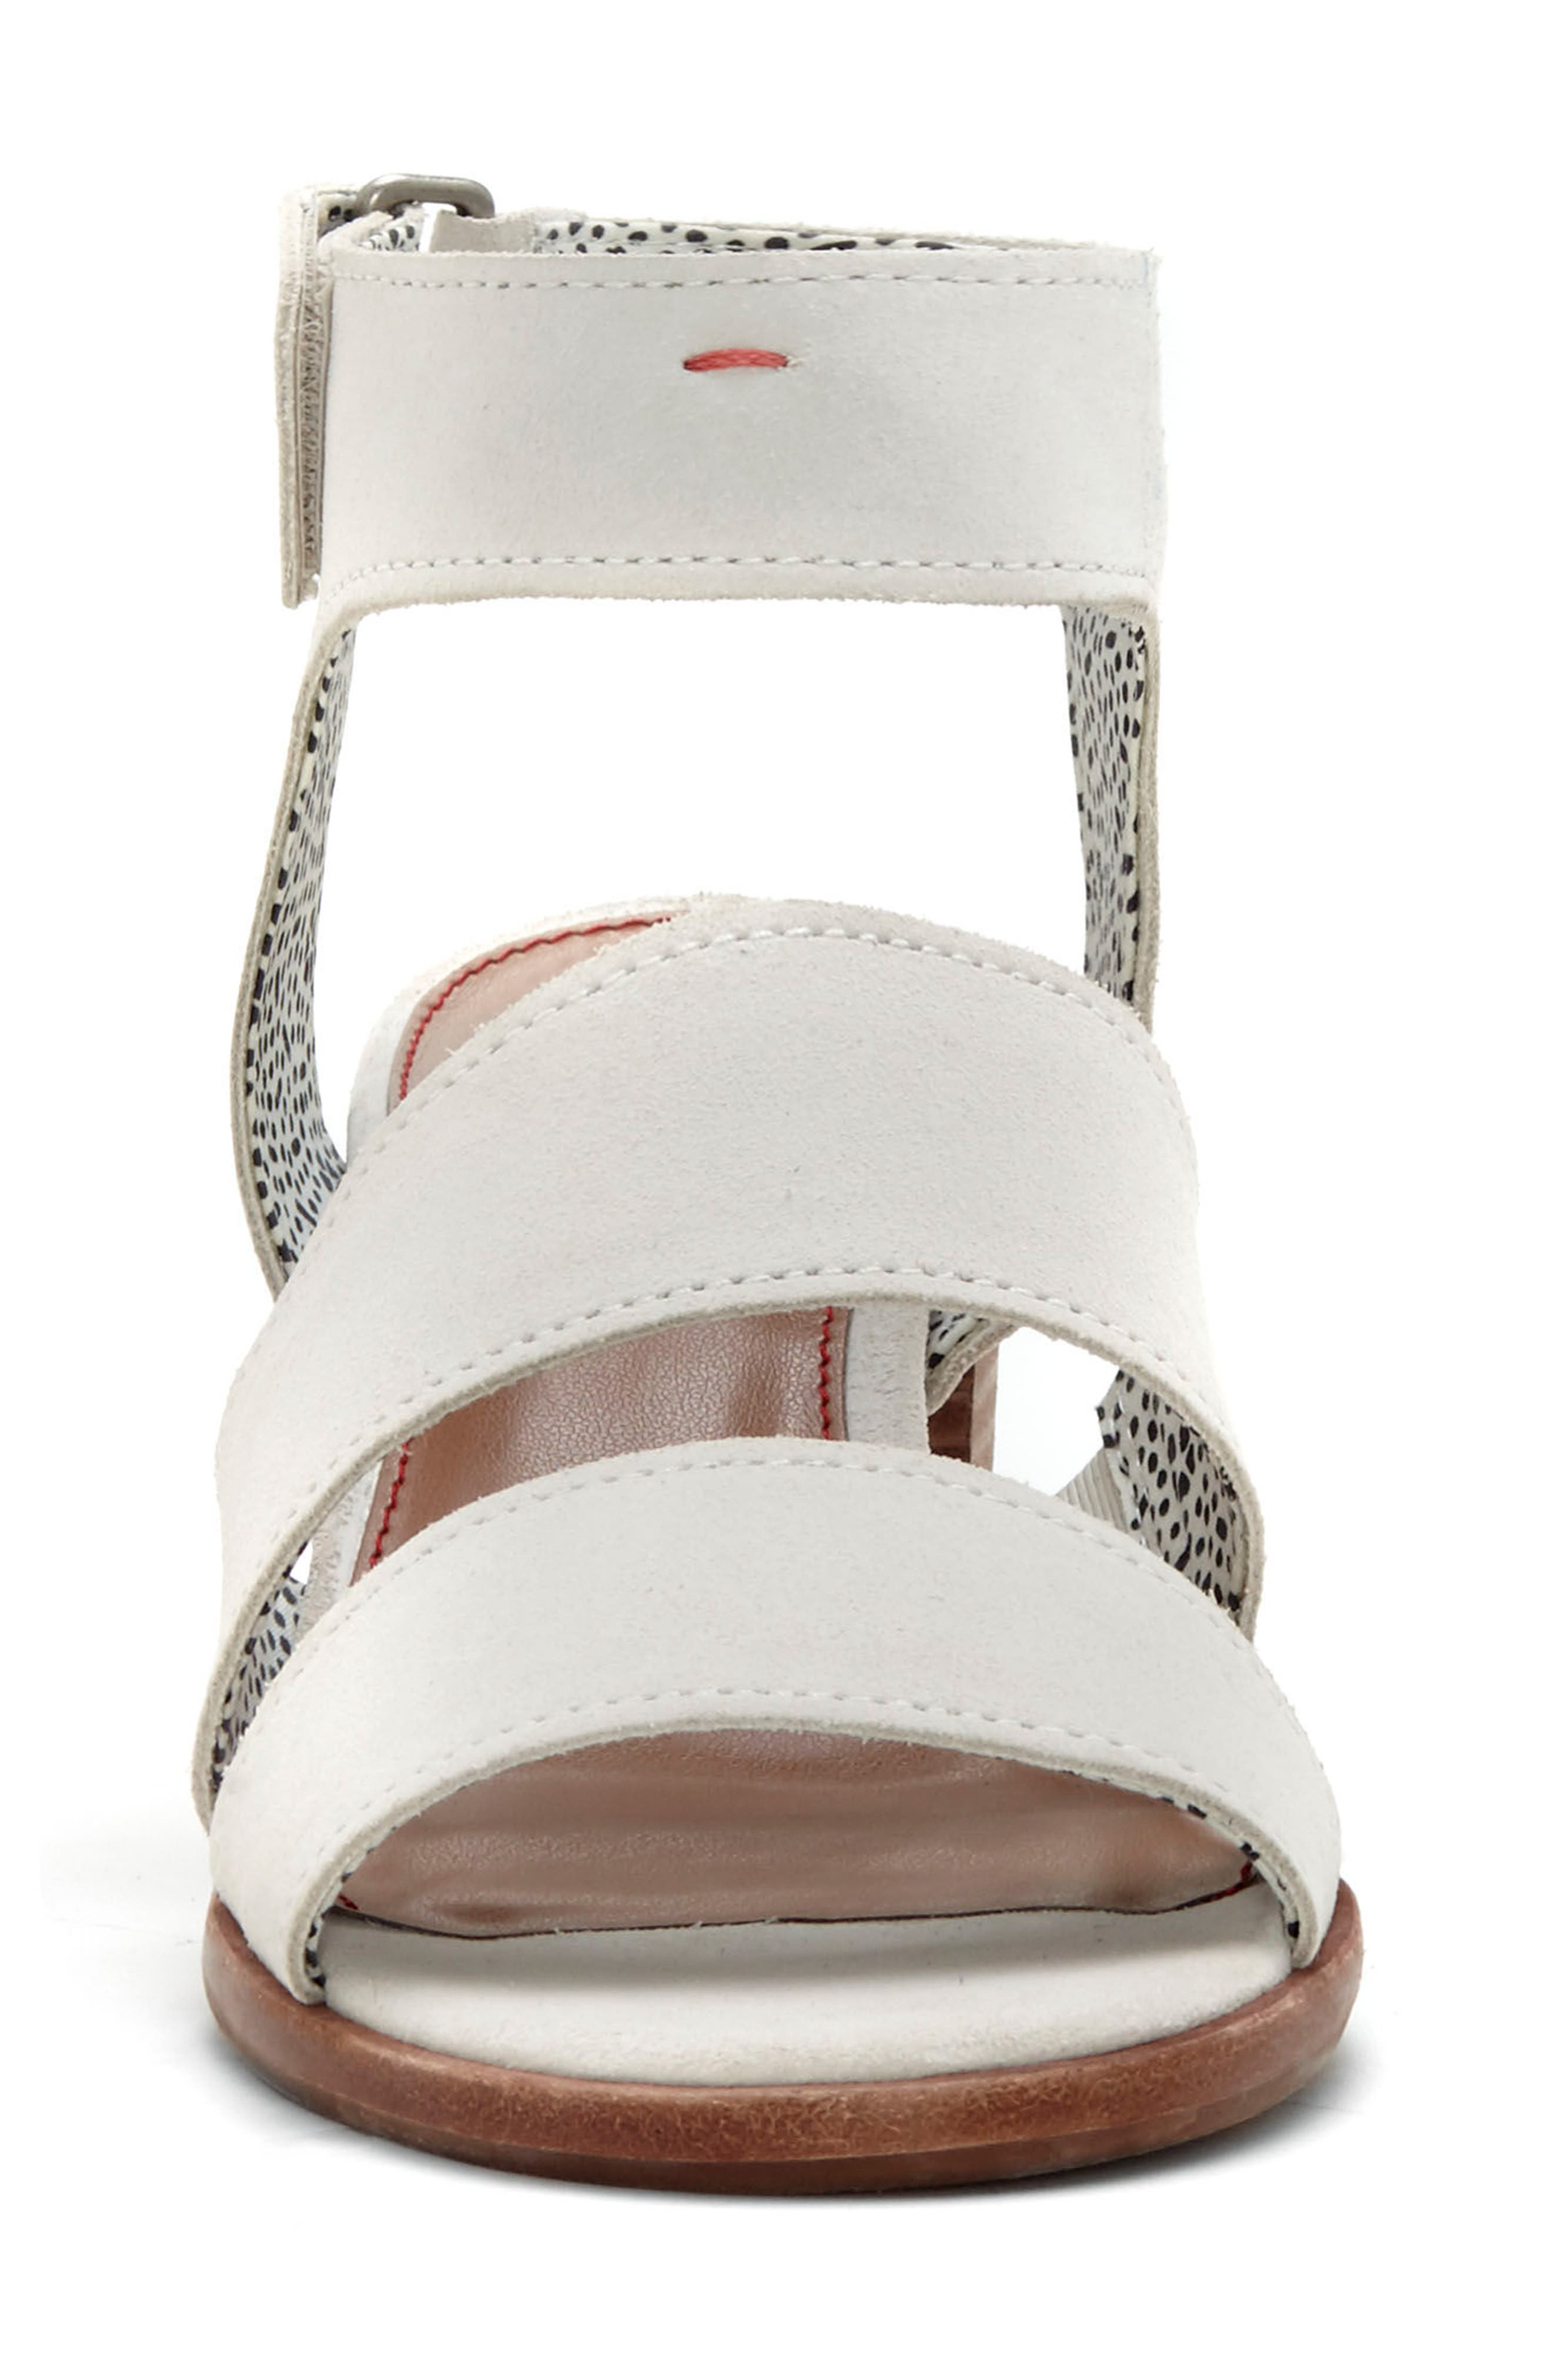 Tahni Strappy Sandal,                             Alternate thumbnail 3, color,                             110